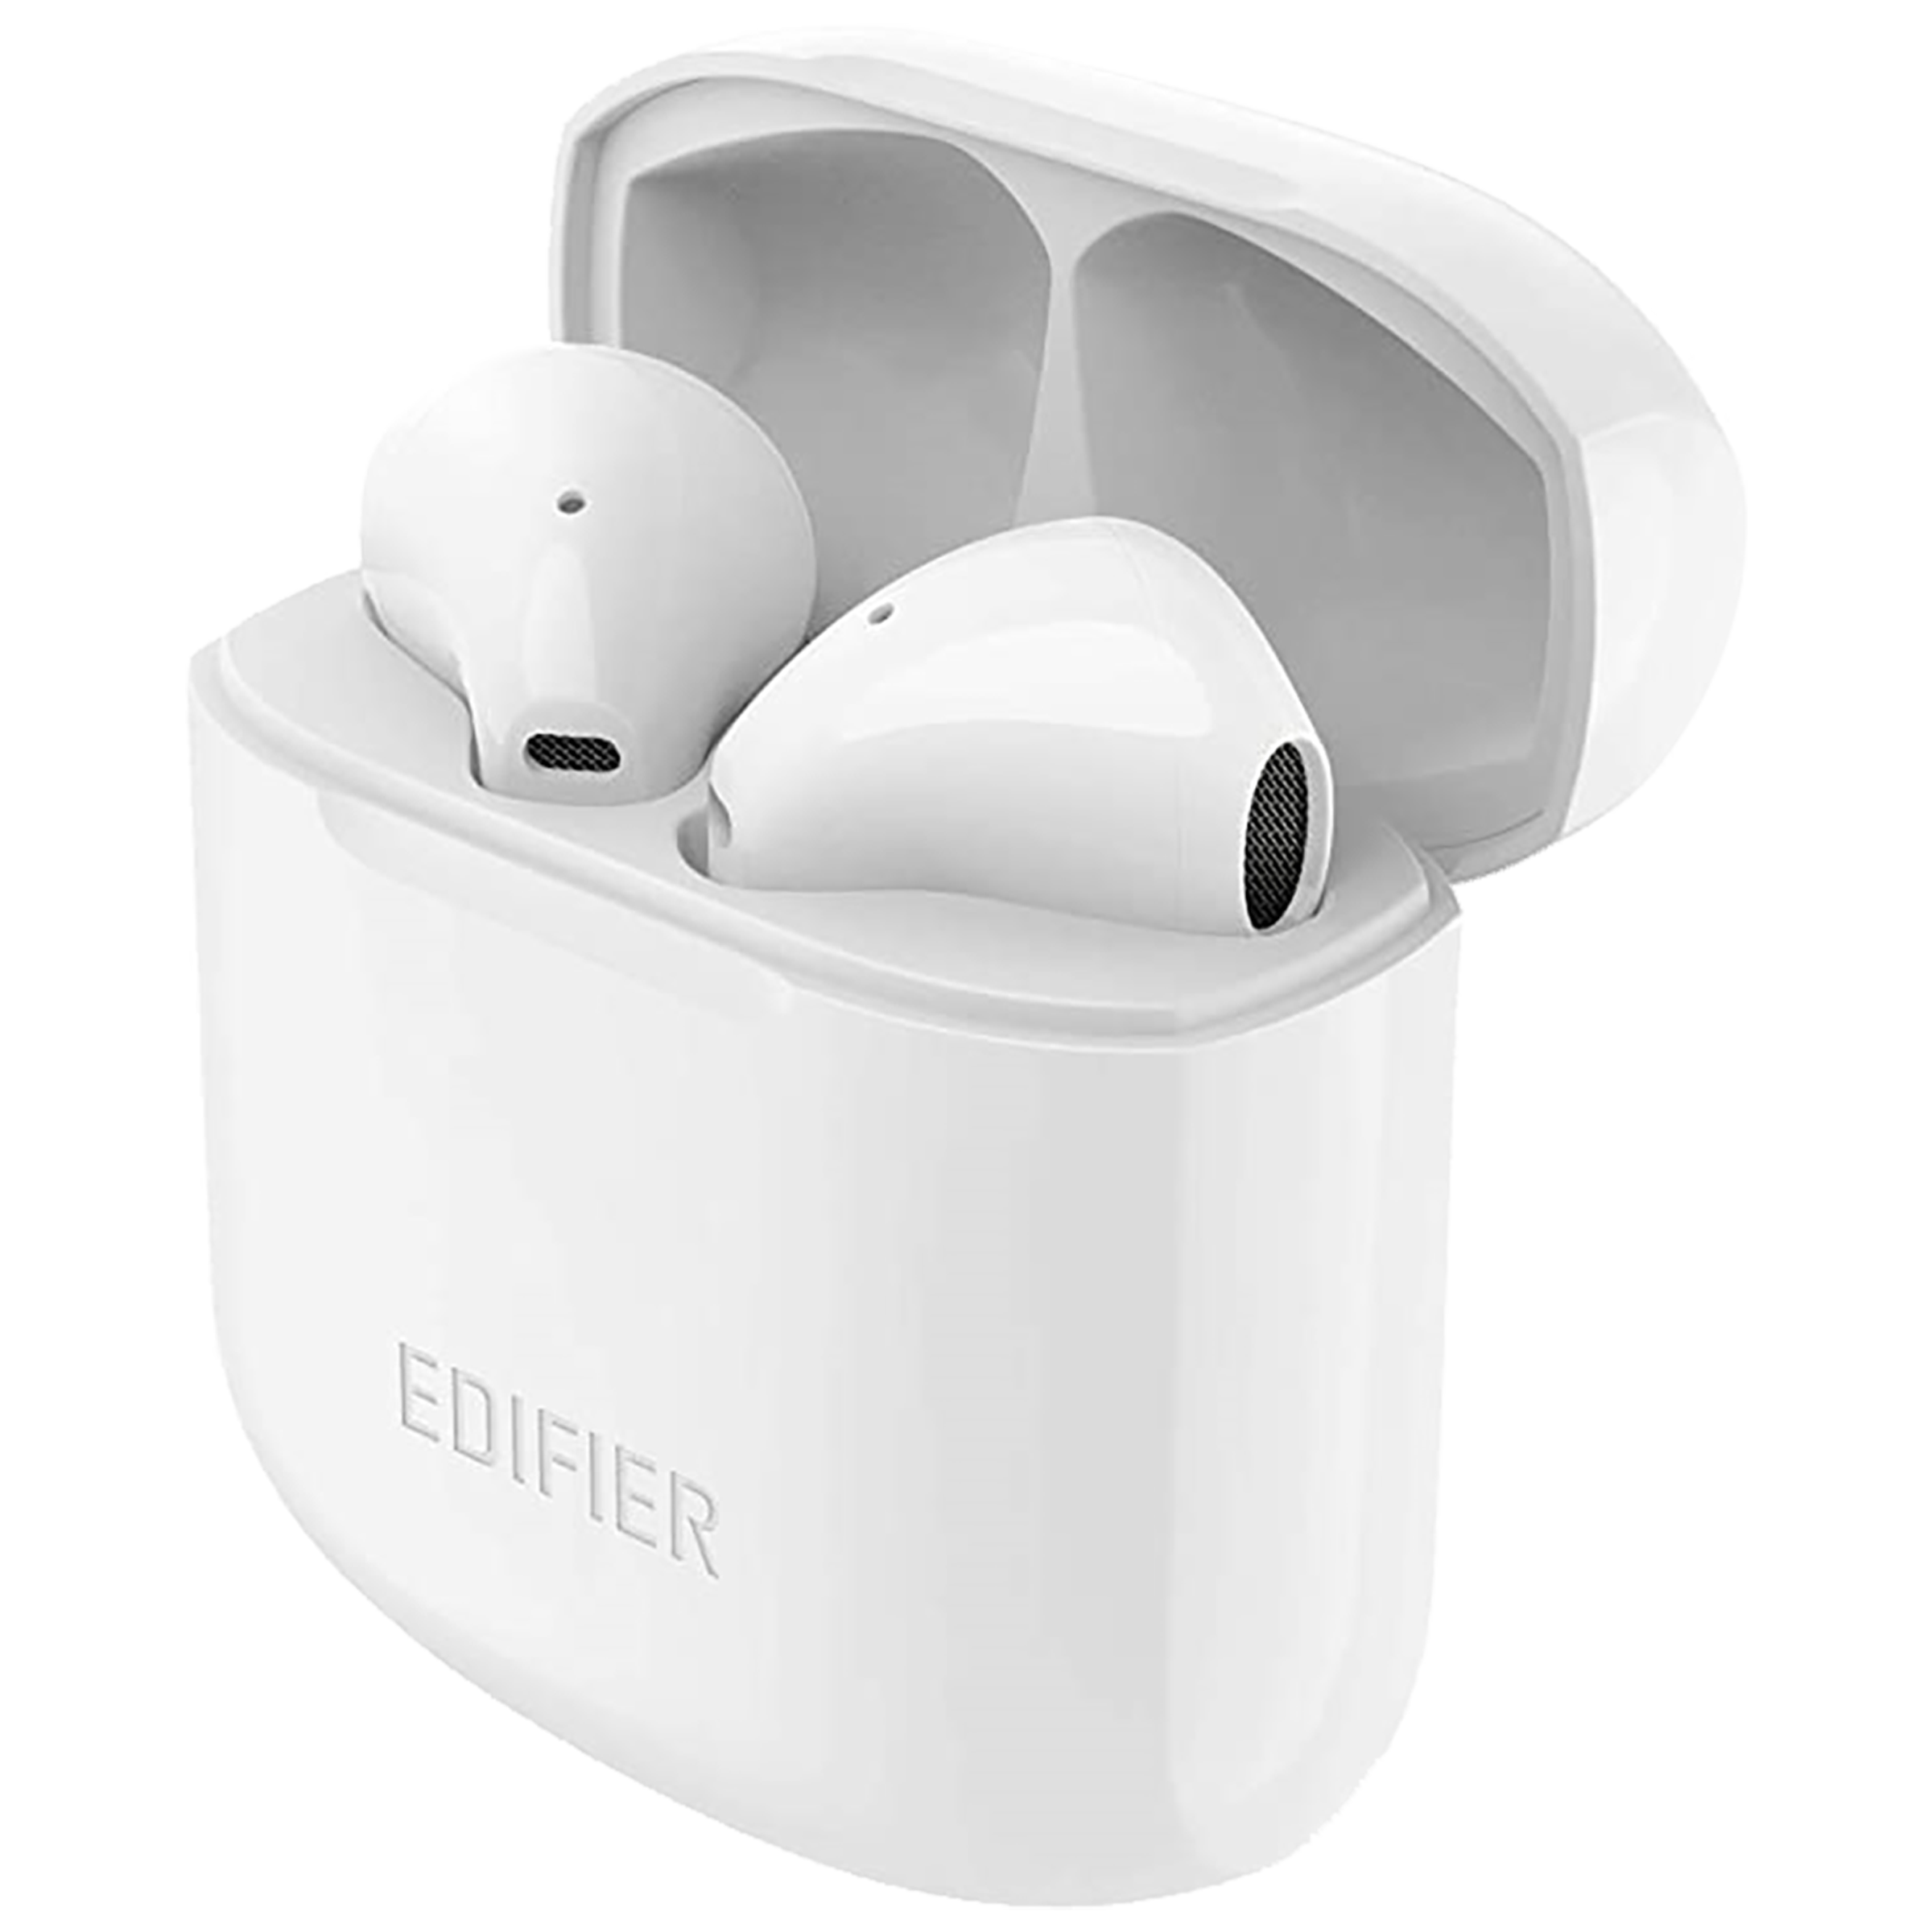 Edifier TWS 200 In-Ear Active Noise Cancellation Truly Wireless Earbuds With Mic (Bluetooth 4.0, 24 Hours Playback Time, White)_1